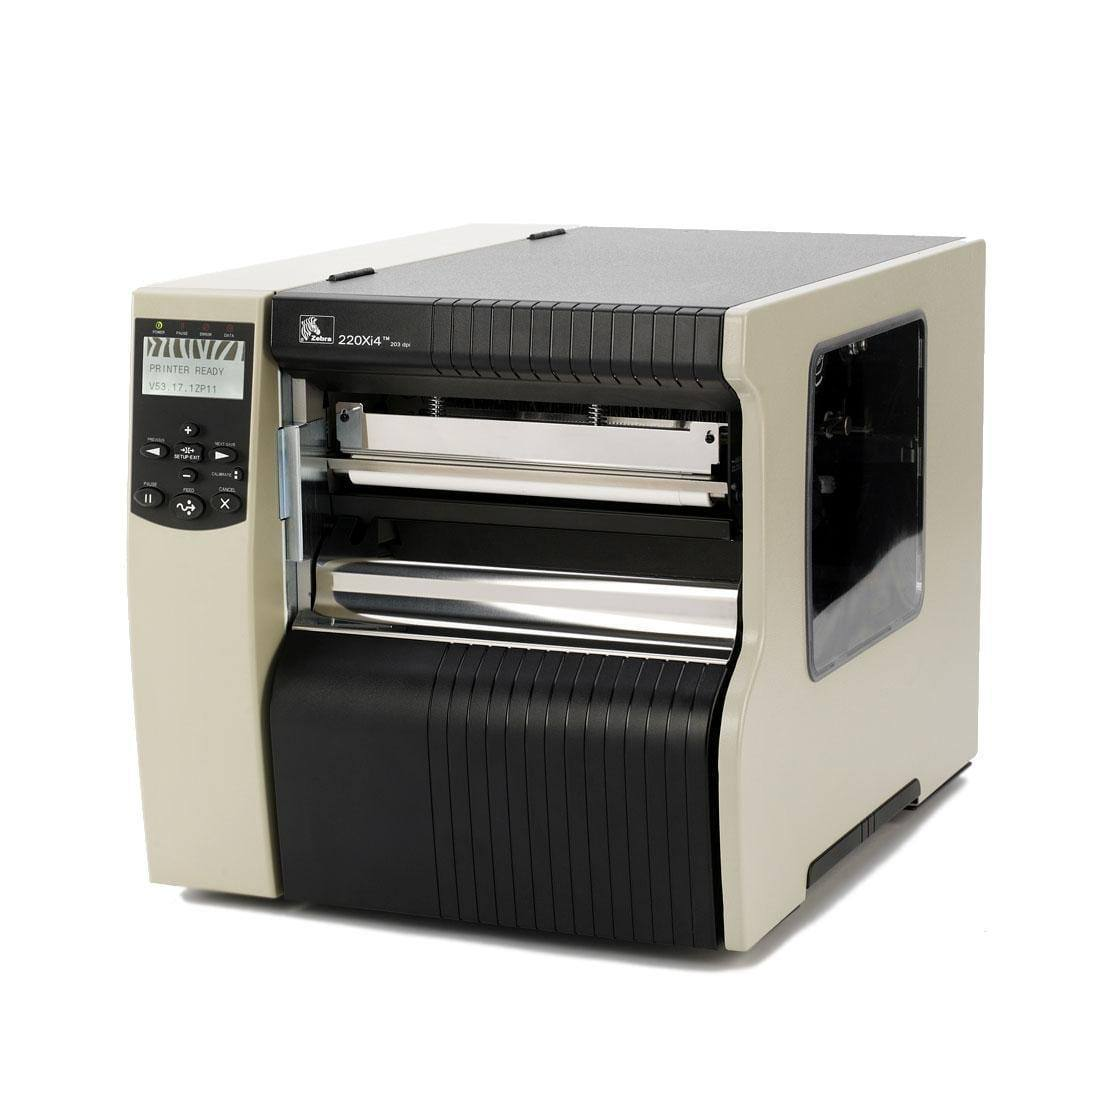 Zebra 220Xi4 Industrial Barcode Printer